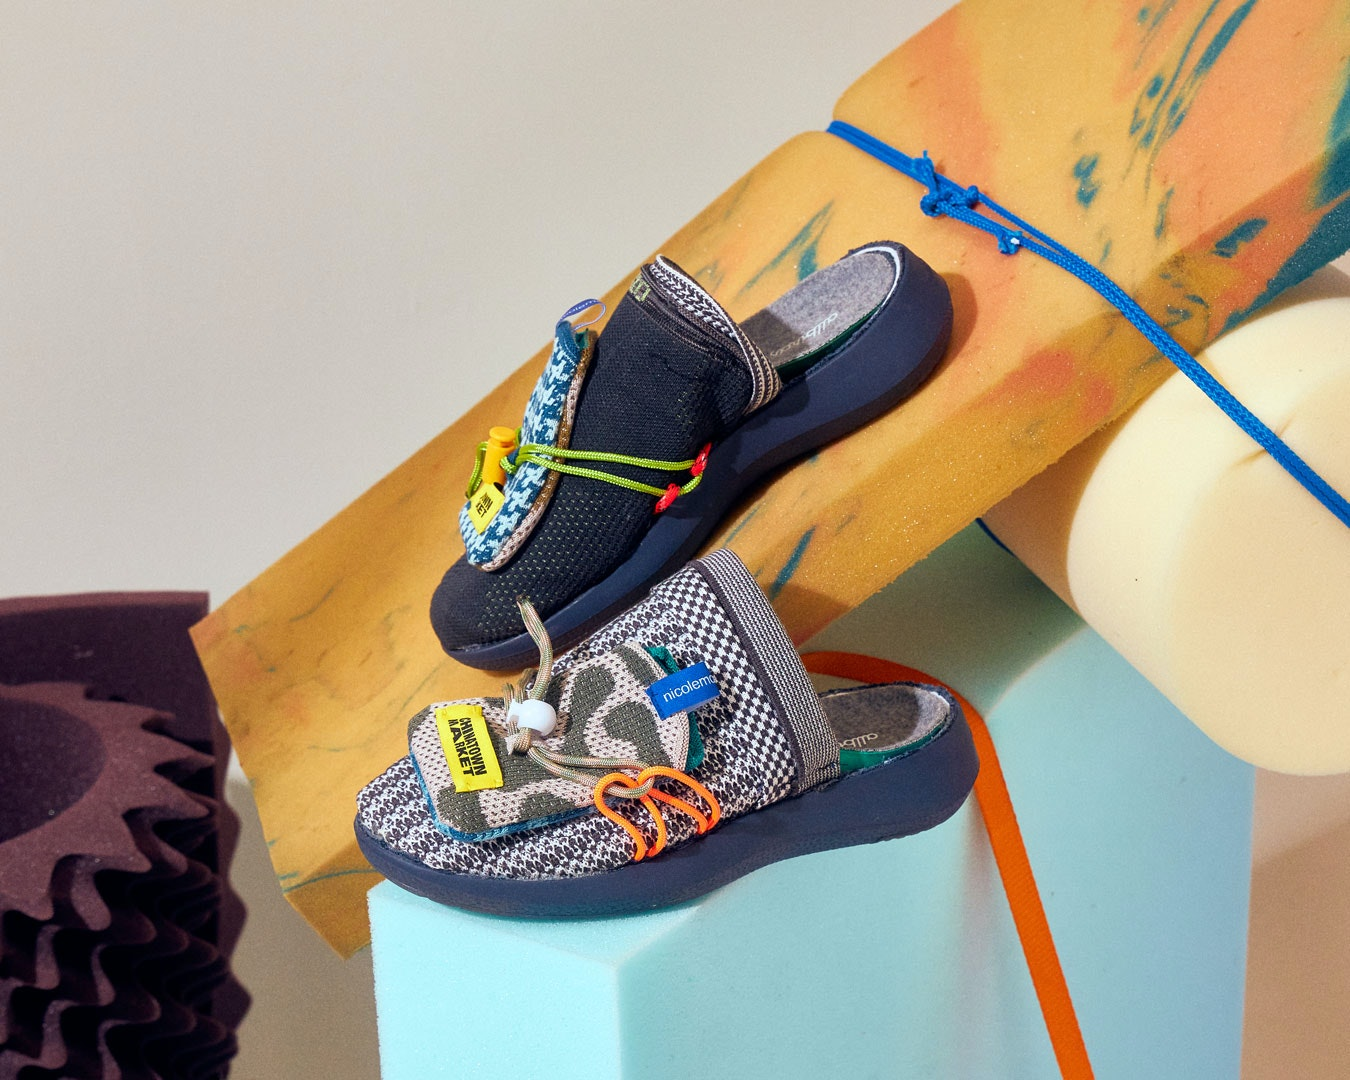 Get Schooled On Sustainable DIY With This Collab From Allbirds And Chinatown Market